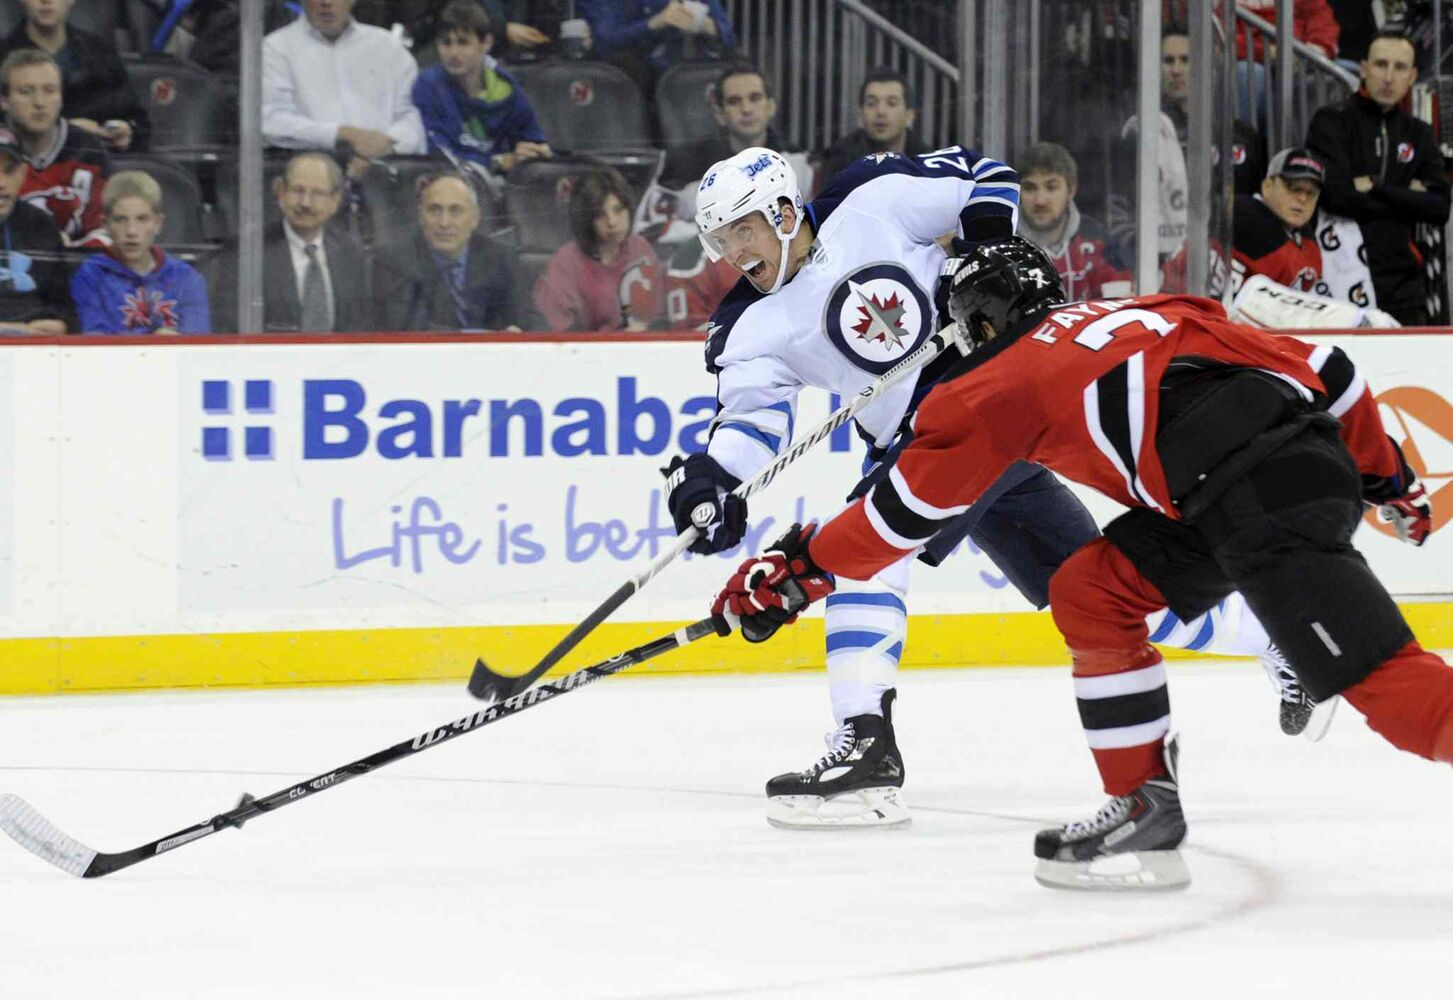 Winnipeg Jets forward Blake Wheeler takes a shot as New Jersey Devils' Mark Fayne attempts to get a stick on it during the first period. (BILL KOSTROUN / THE ASSOCIATED PRESS)